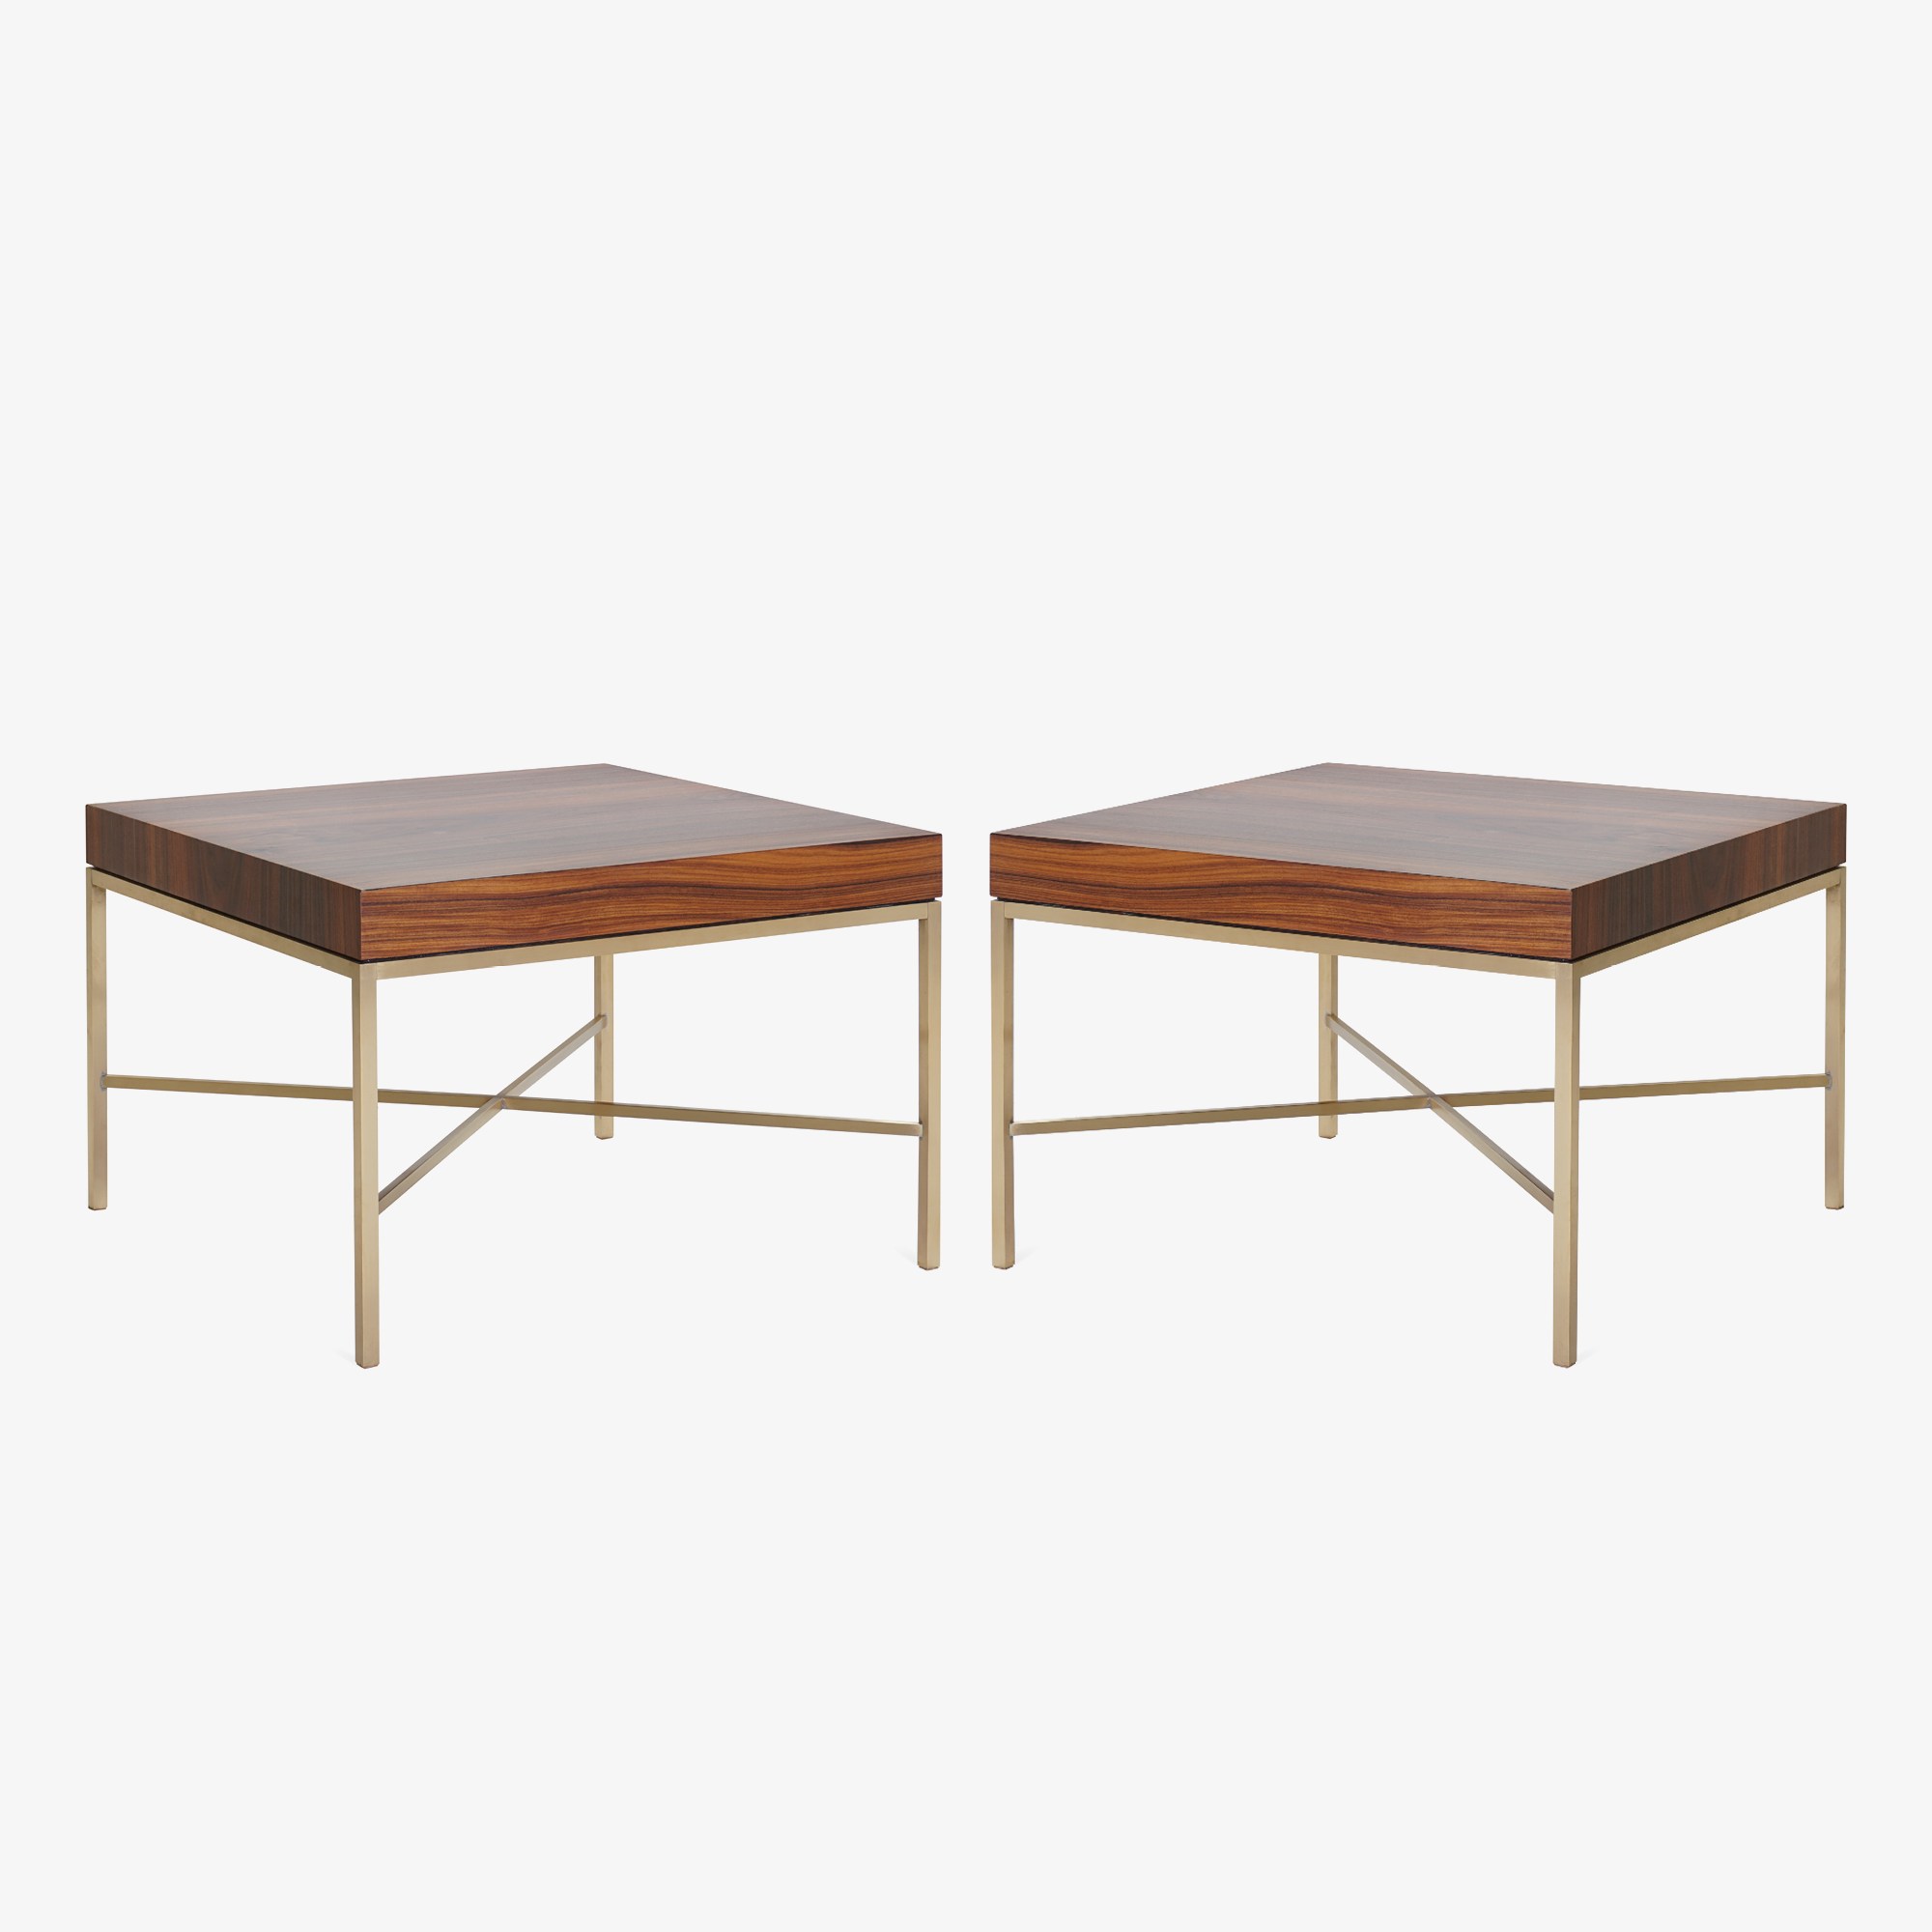 Brass Cross Stretcher Table in Rosewood3.png